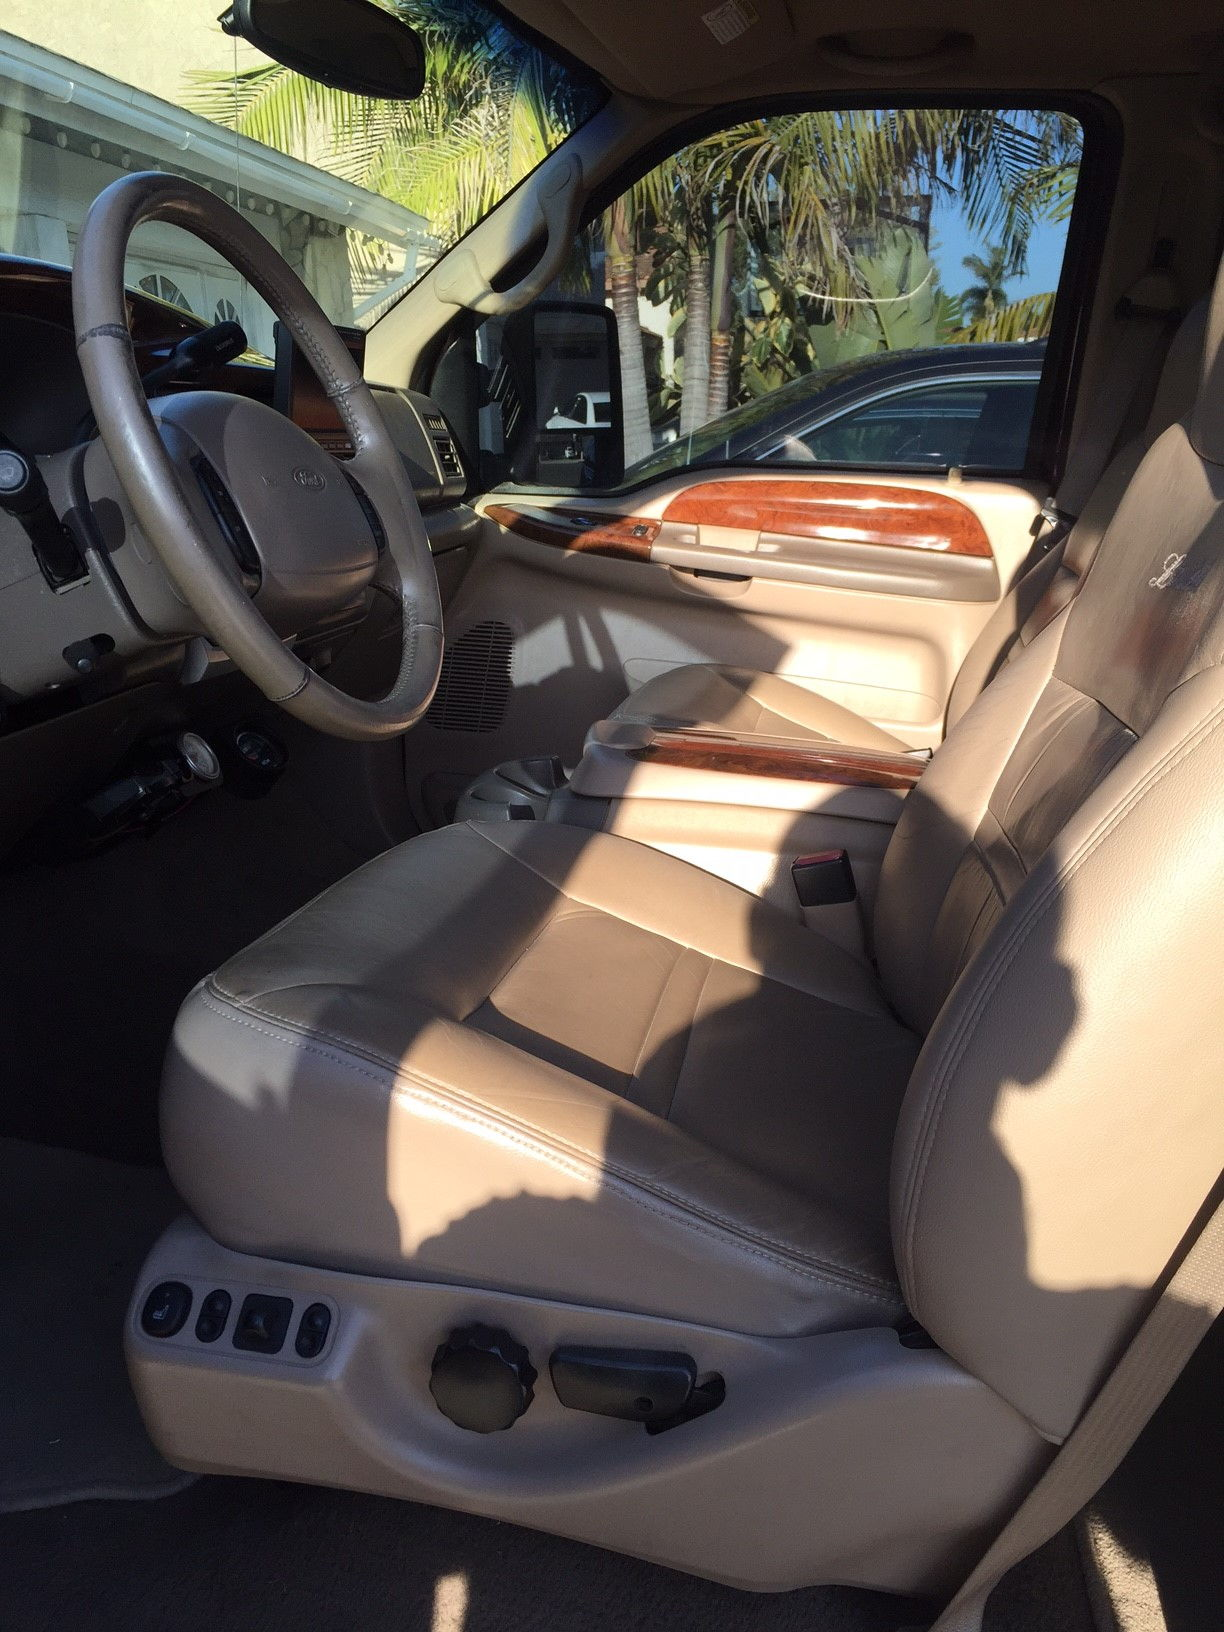 Ca car color beige - Local Southern California Car 2nd Owner Many Quality Upgrades Make This A Great Family Car And Tow Rig